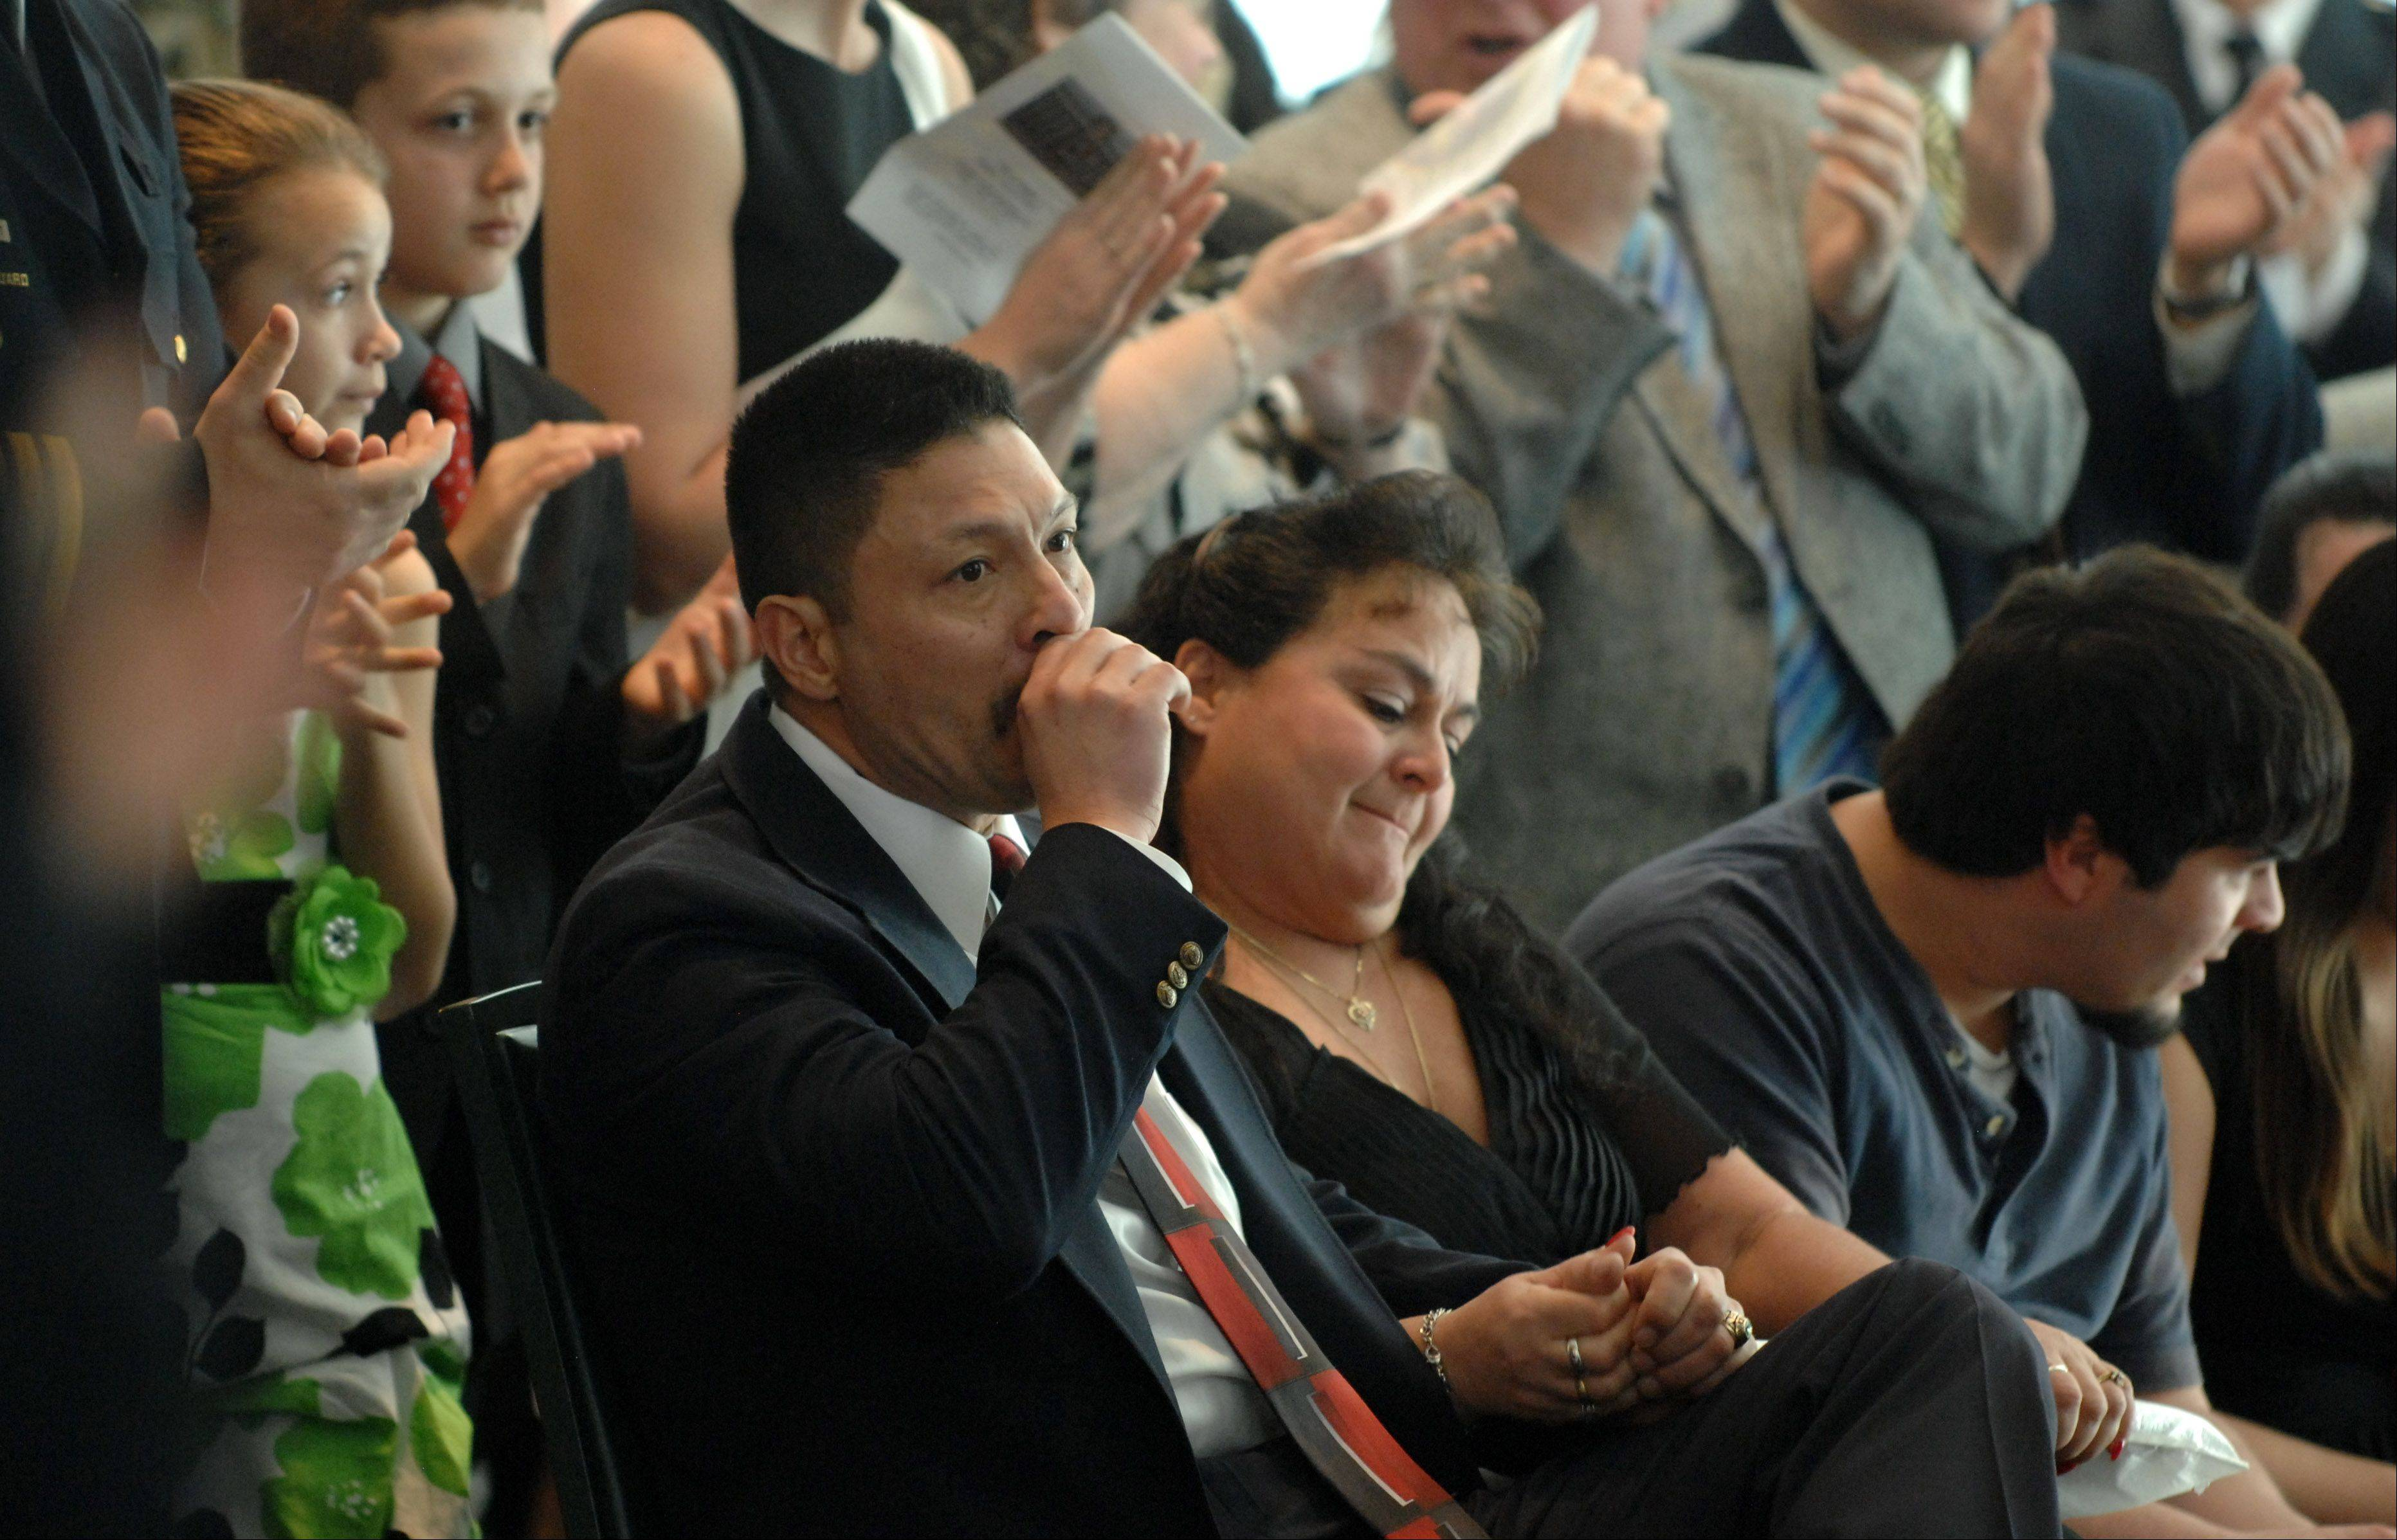 Sergeant Jose Morales gets emotional after his retirement speech as he sits with his family to a standing ovation during a promotion and retirement ceremony for the Elgin Police Department Friday.